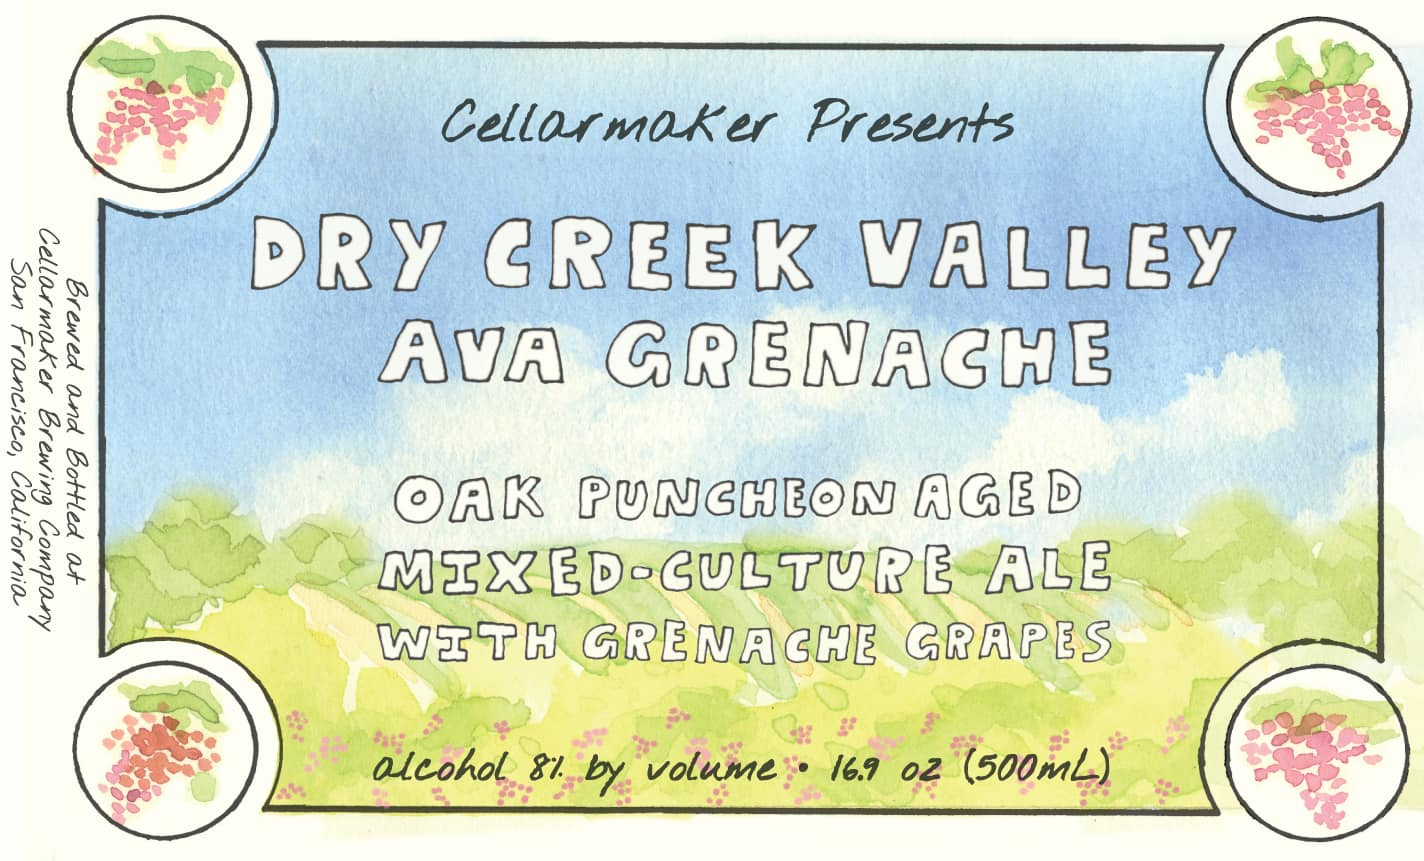 Dry Creek Valley AVA Grenache Bottles ~ Sold Out